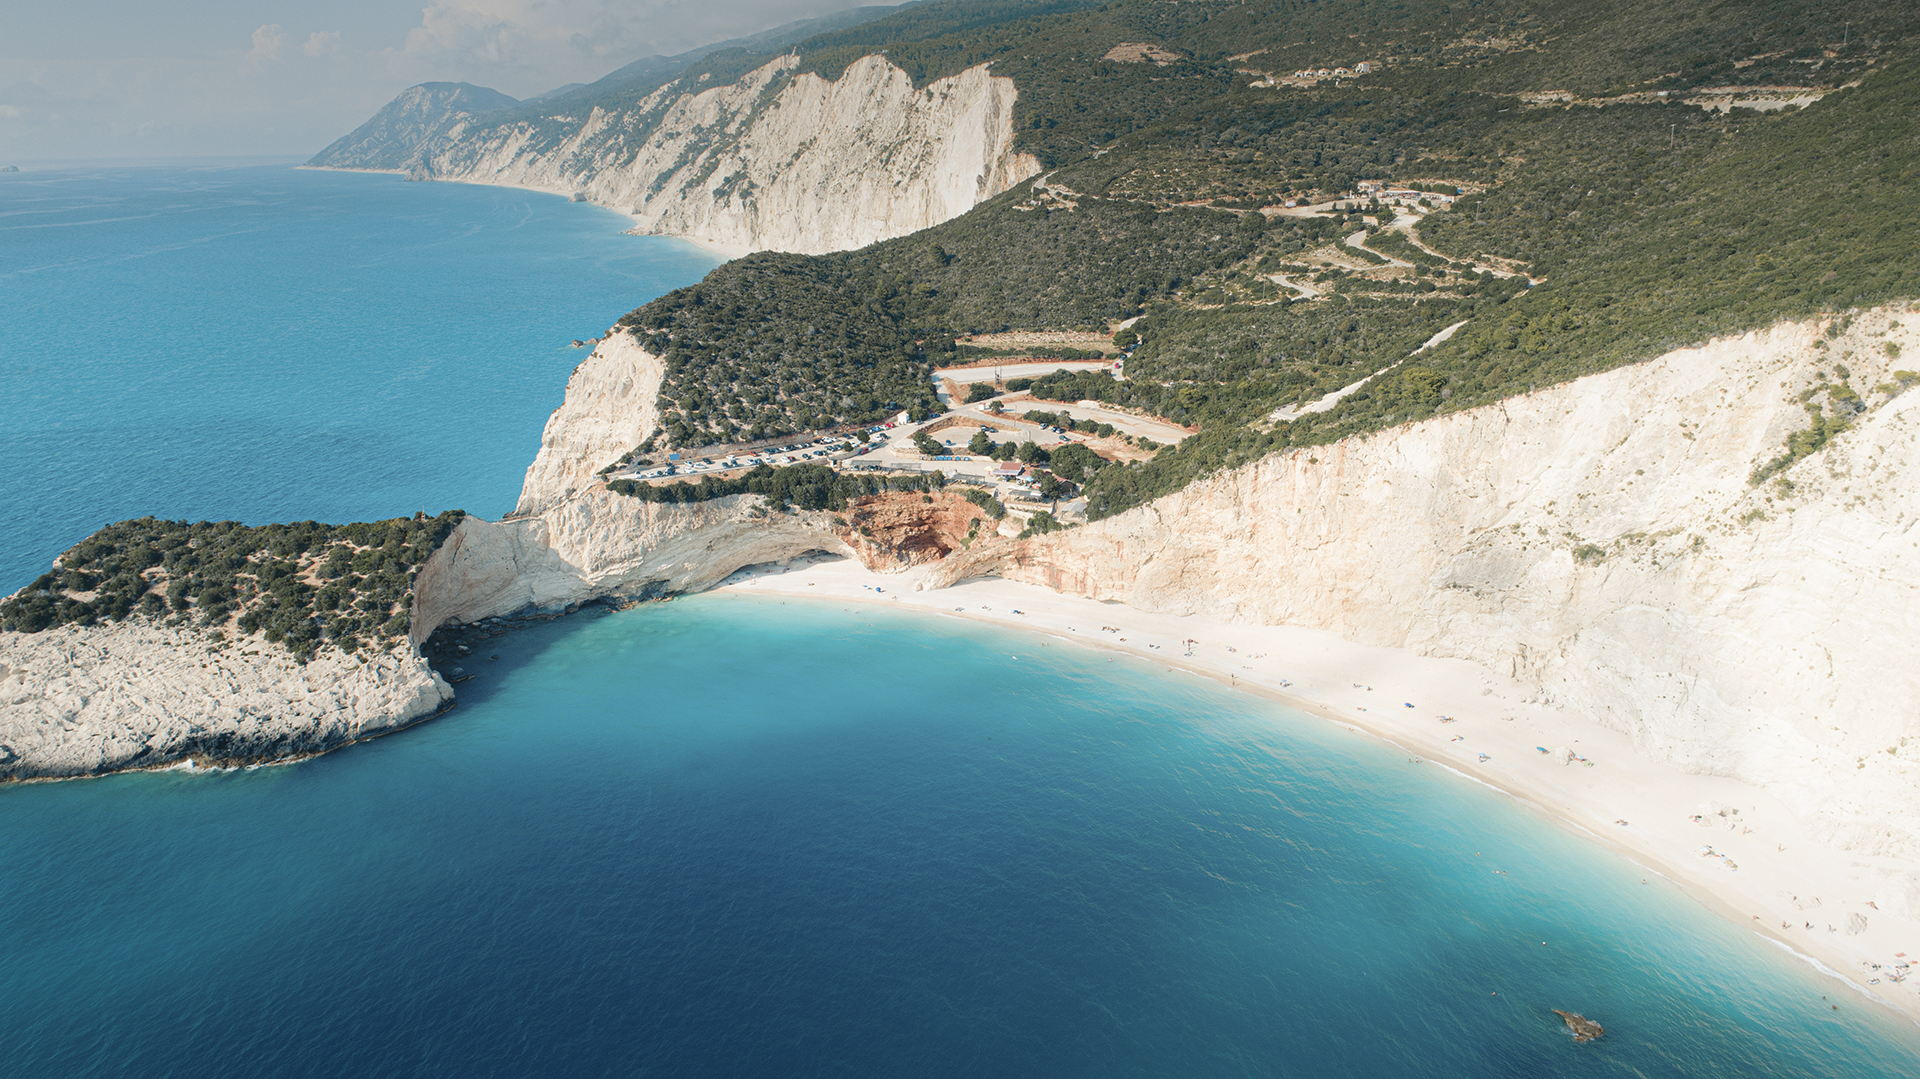 Porto Katsiki beach from above